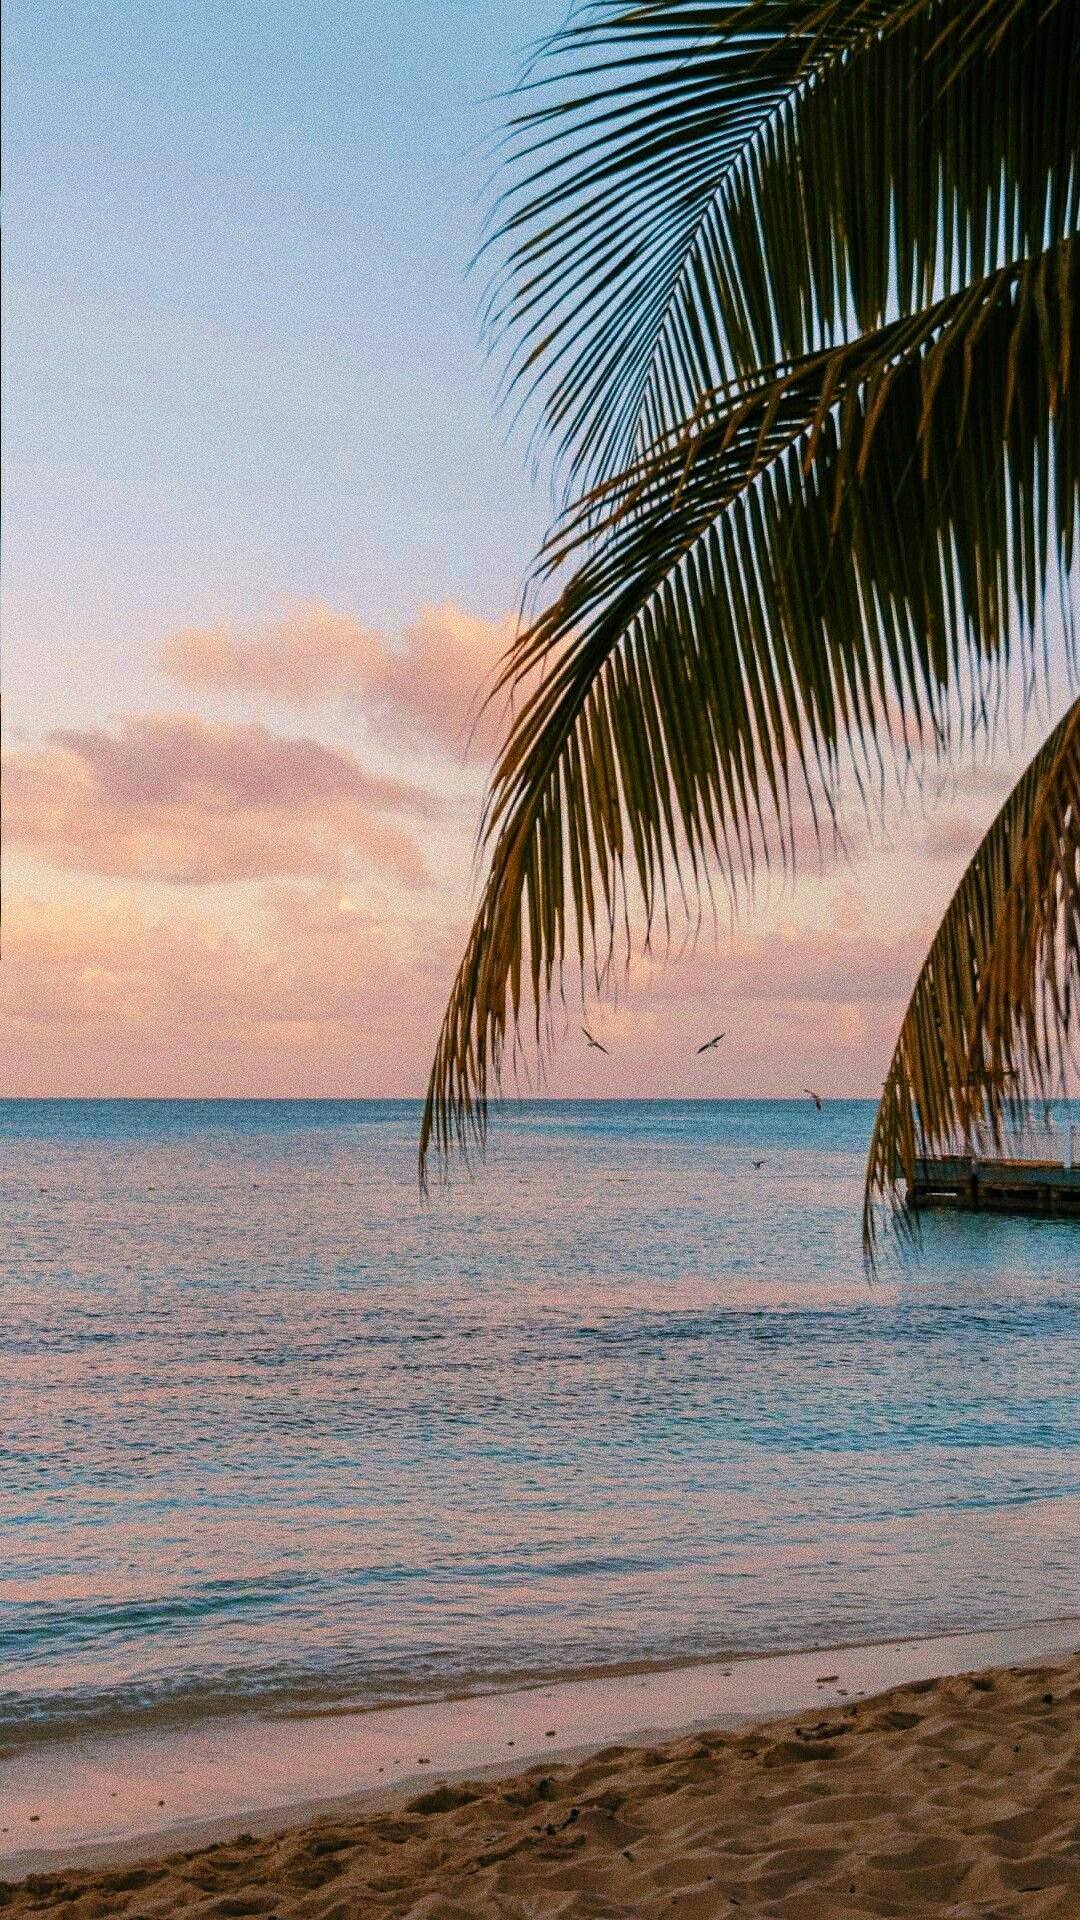 Pink Color Colorful Pastel Aesthetic Wallpaper Pretty Sweet Background Sea Hawaii Background Nature Wallpaper Pastel Aesthetic